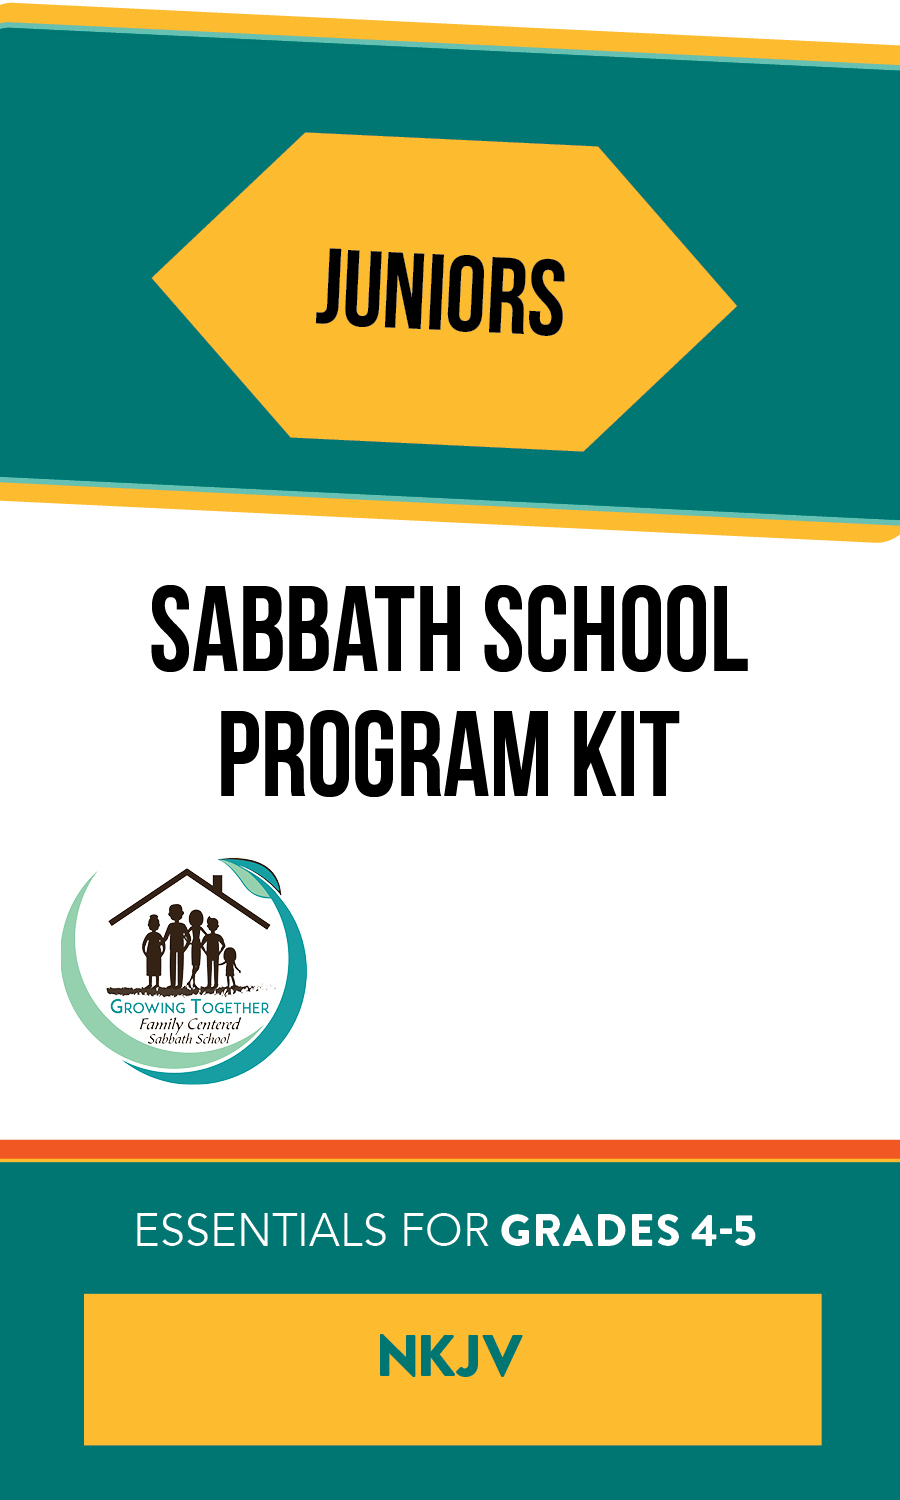 Growing Together SS Curriculum 2019 - Junior SS Teaching Kit (Subscription)